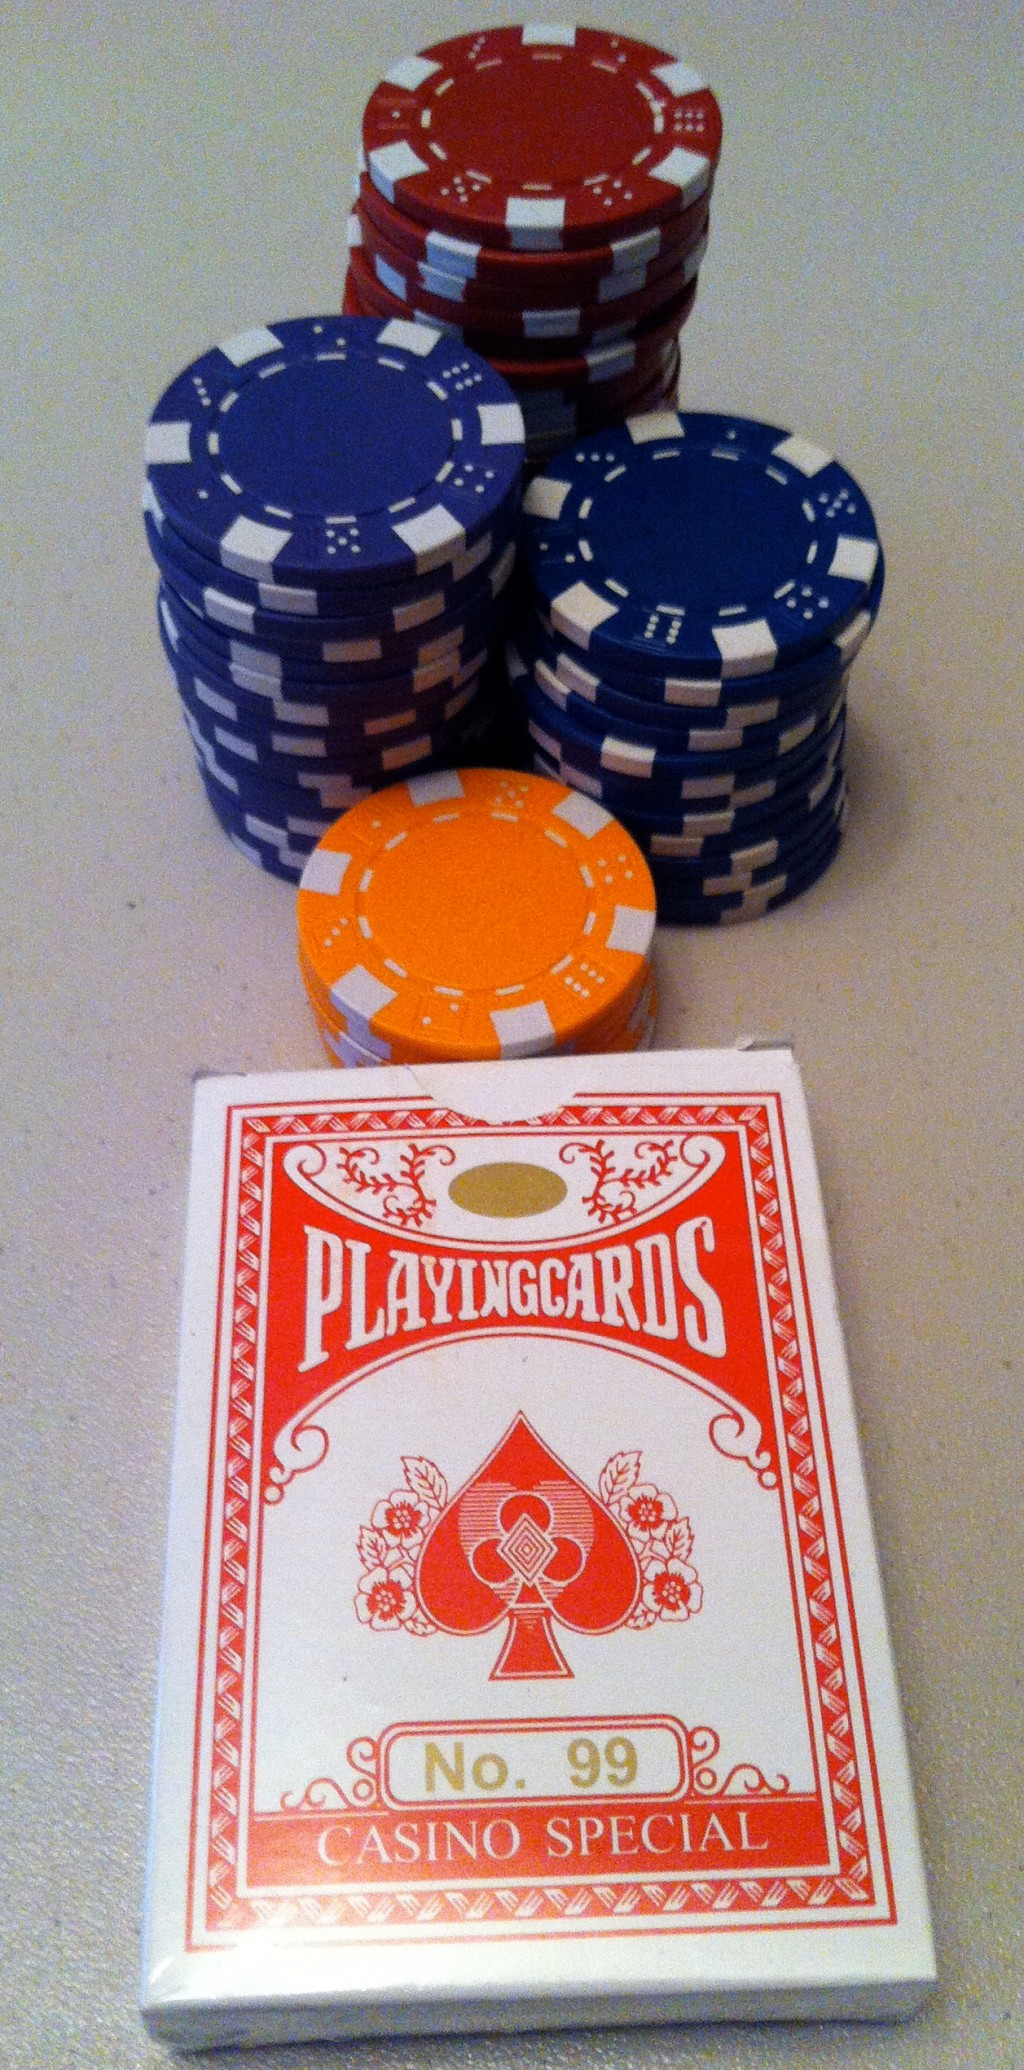 Is poker haram without money